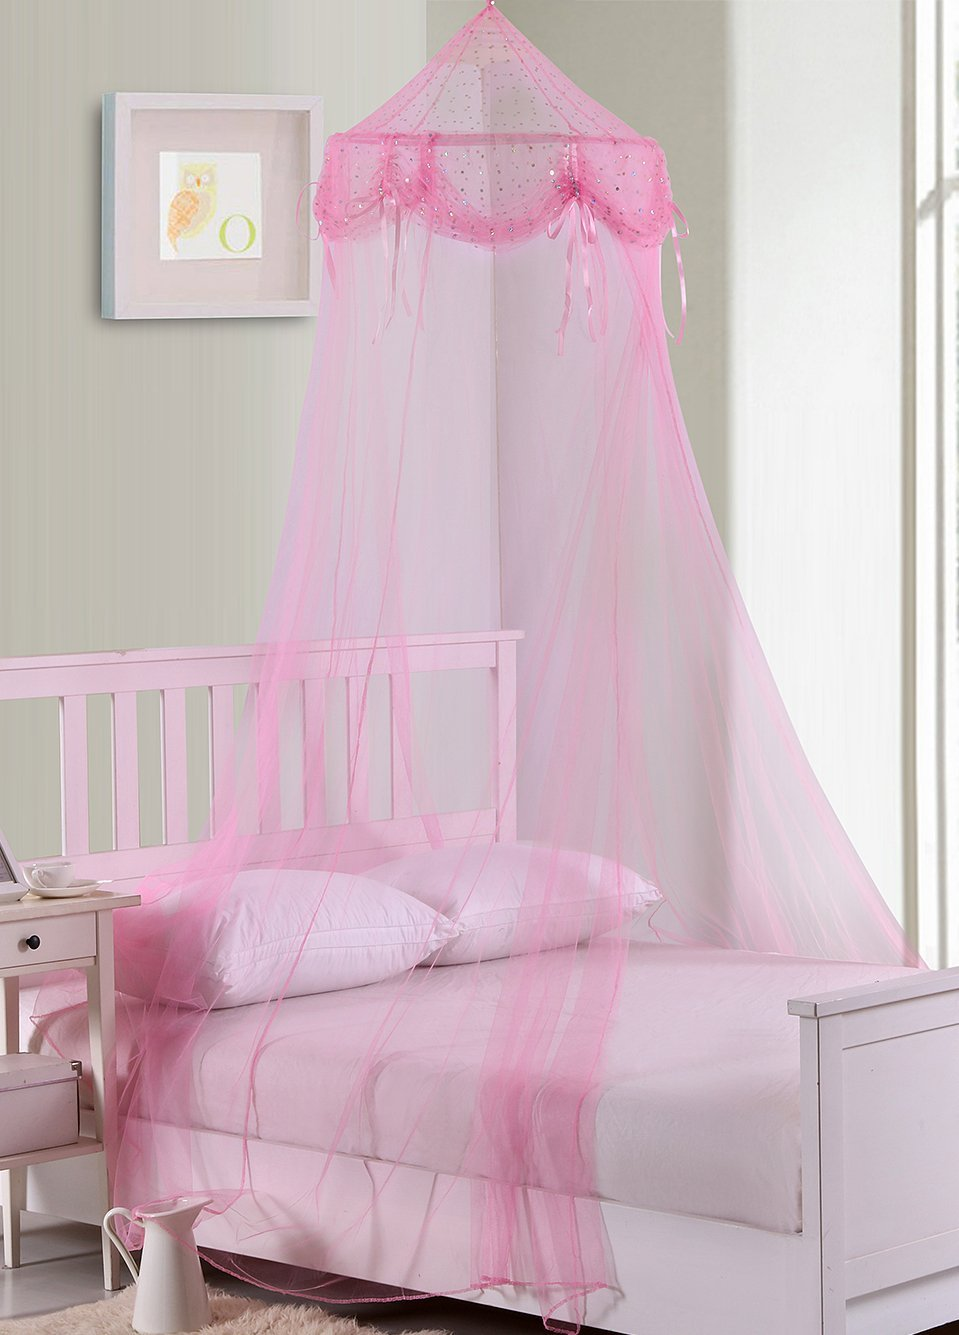 Fantasy Kids But Tons & Bows Collapsible Hoop Sheer Bed Canopy, One Size, Pink by Fantasy Kids